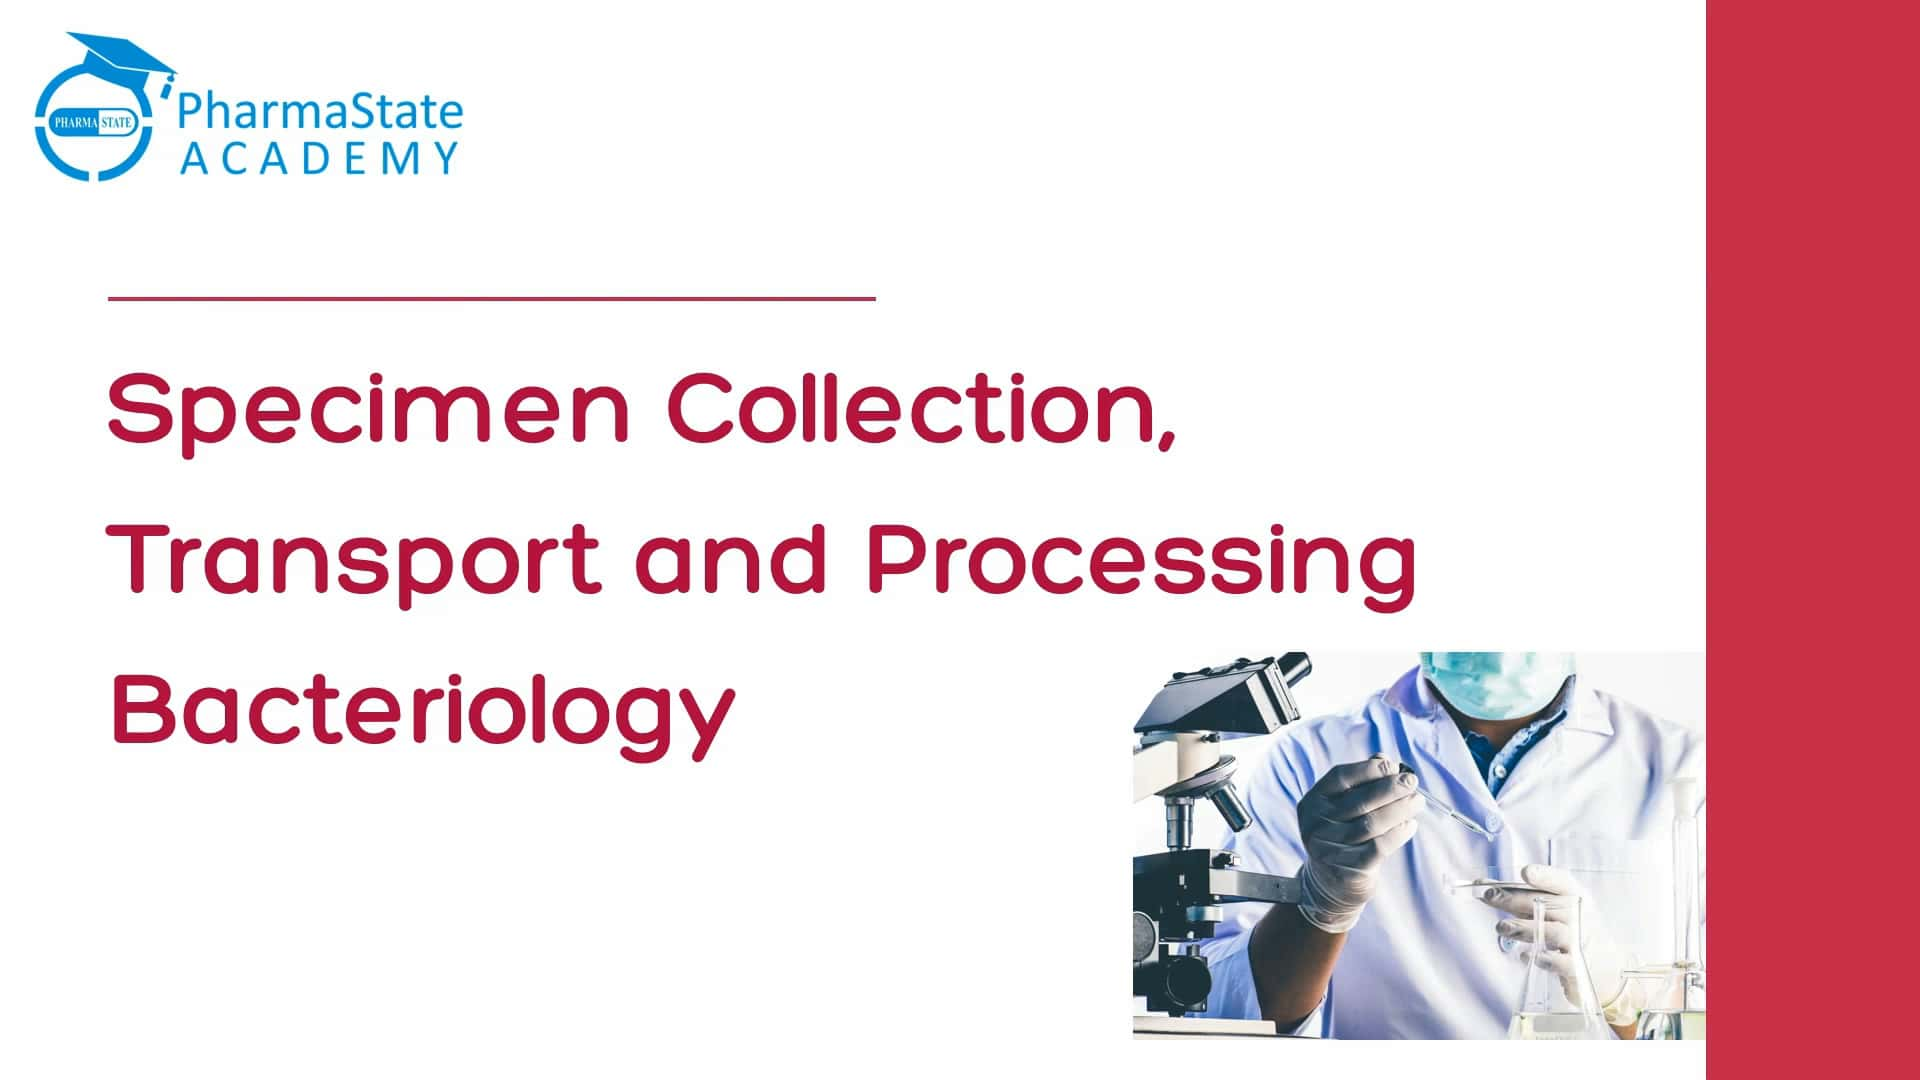 Specimen Collection, Transport and Processing Bacteriology